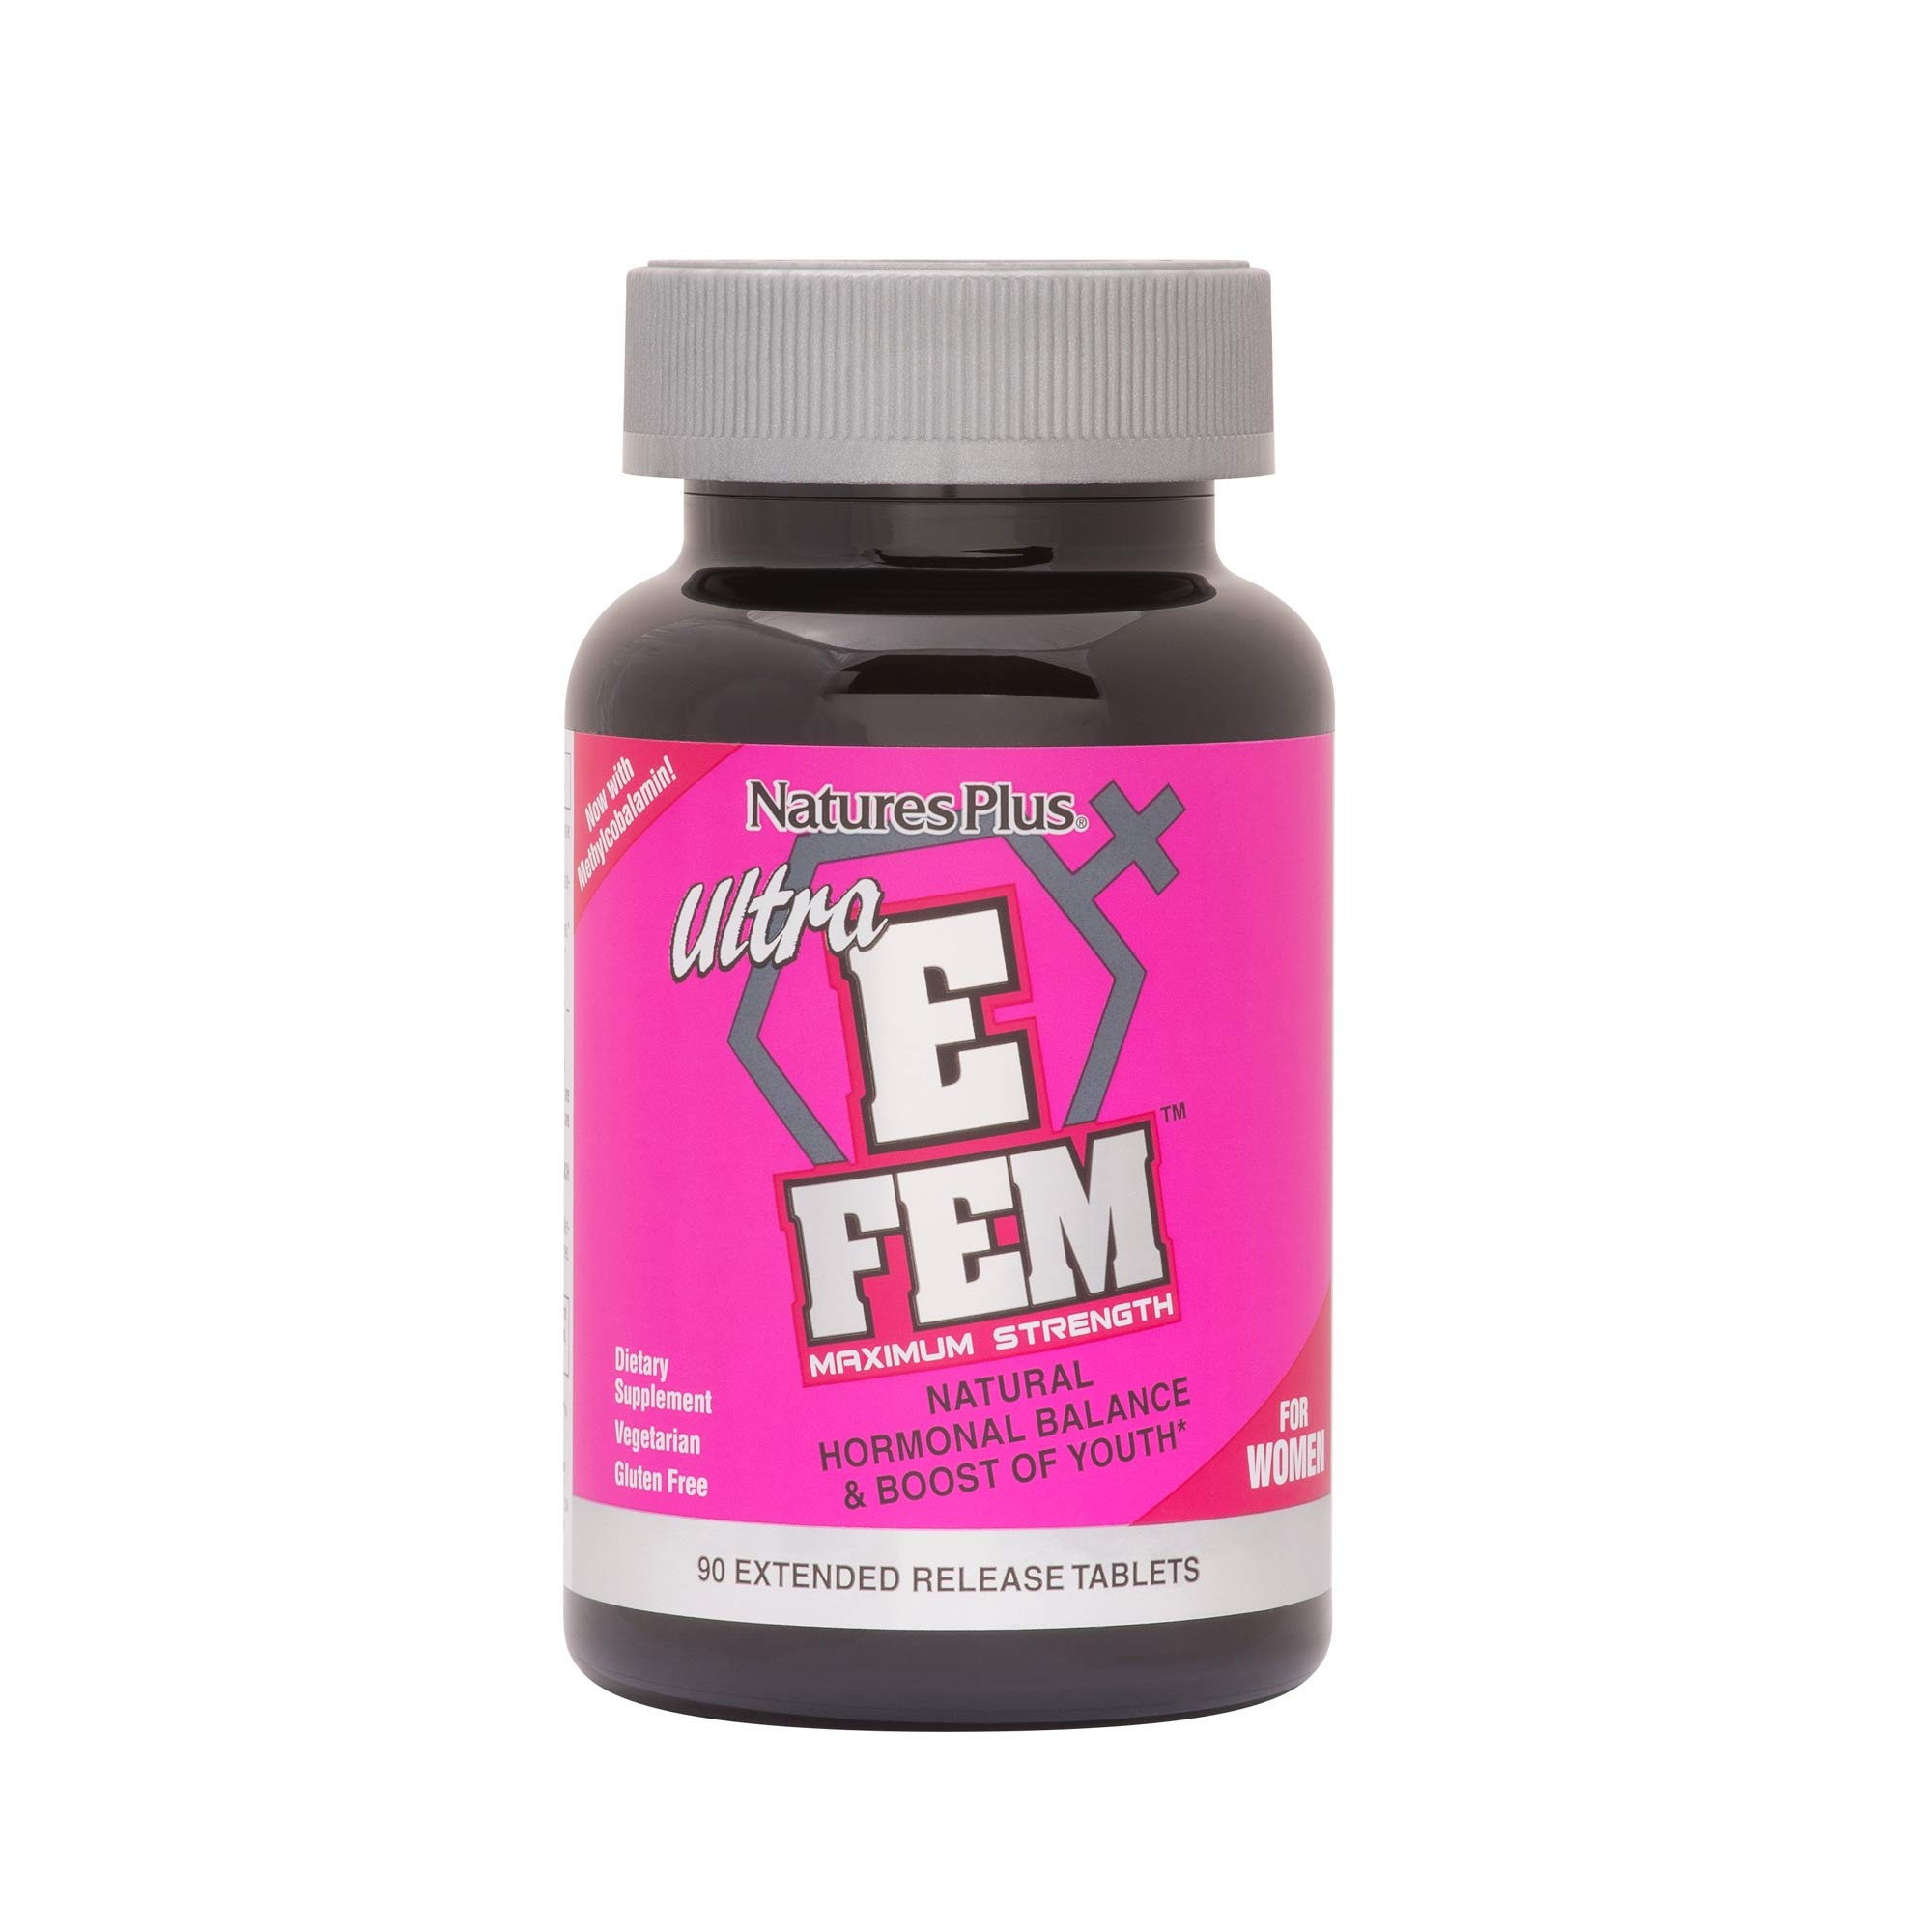 Nature's Plus - Ultra E-FEM Extended Release Tablets, Boost of youth, 90 Ct